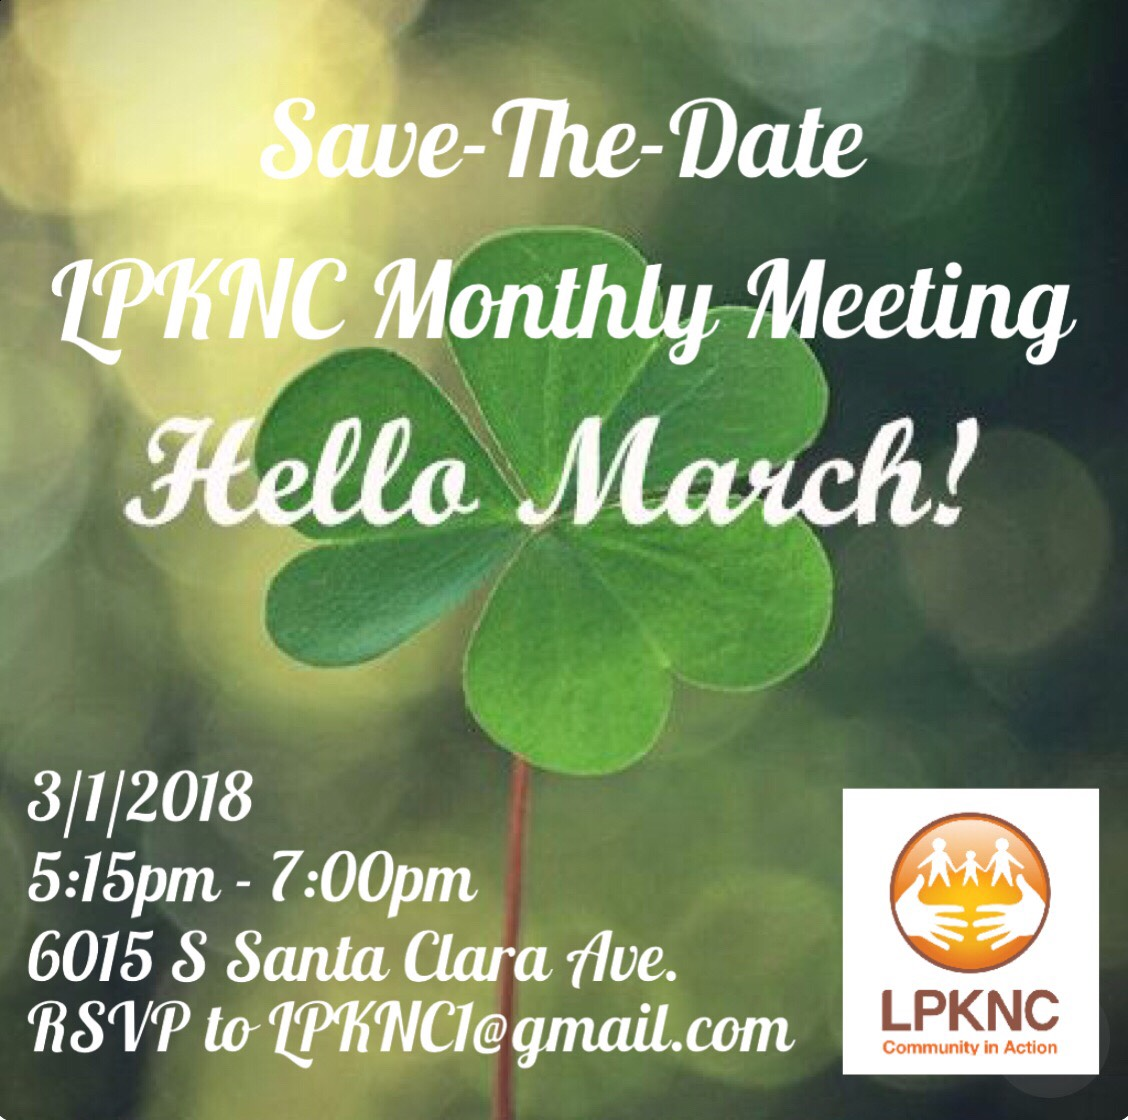 LPKNC March 1 Meeting